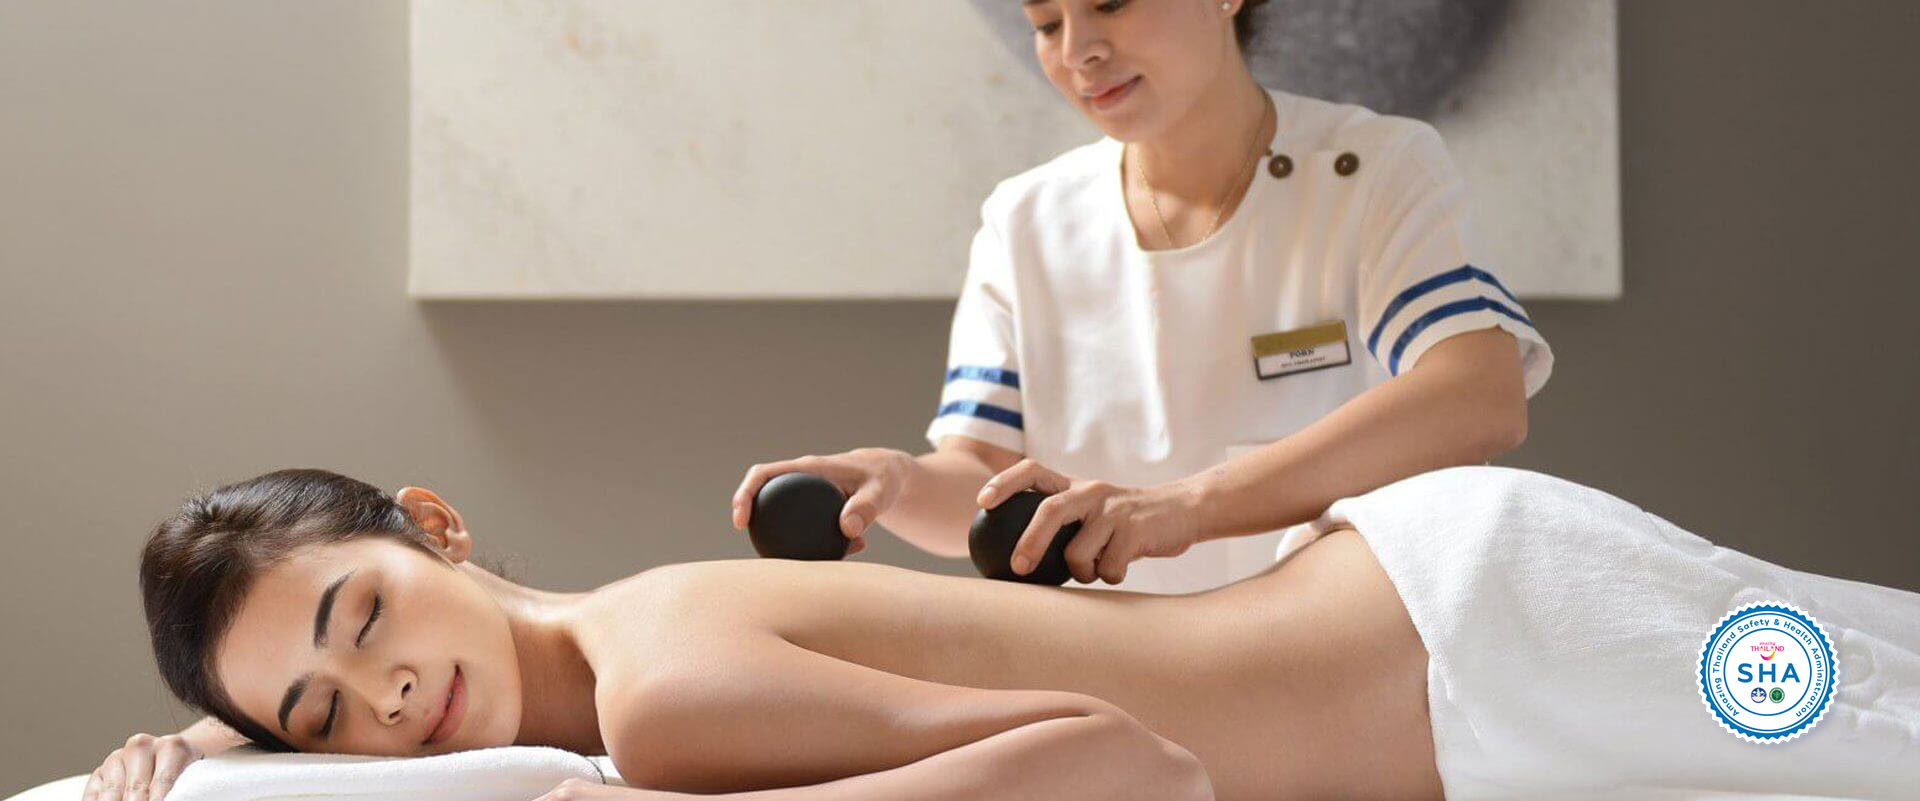 Let's Relax Spa - Thailand's Day Spa